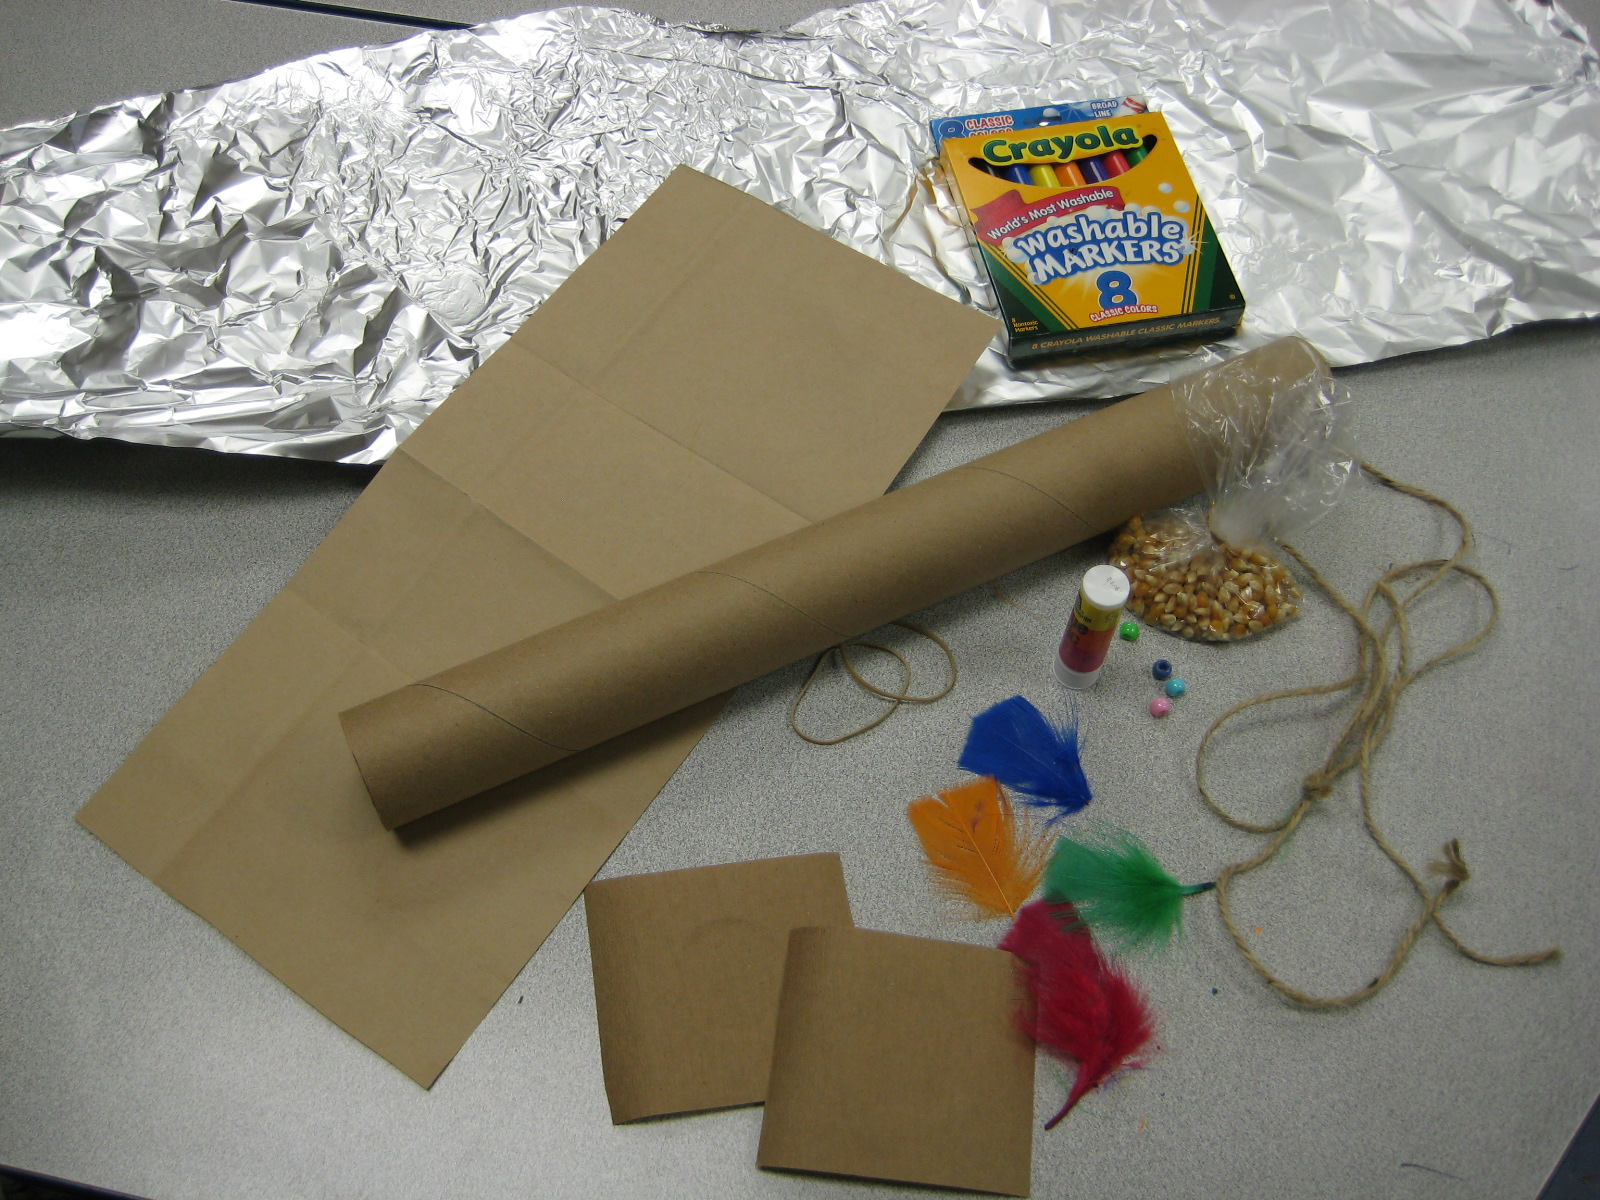 Preschool rain stick craft - 1 Glue Cardboard Circles Centered Onto The Squares Of Brown Paper And Set Aside 2 Lay Out The Long Strip Of Aluminum Foil And Carefully Scrunch It